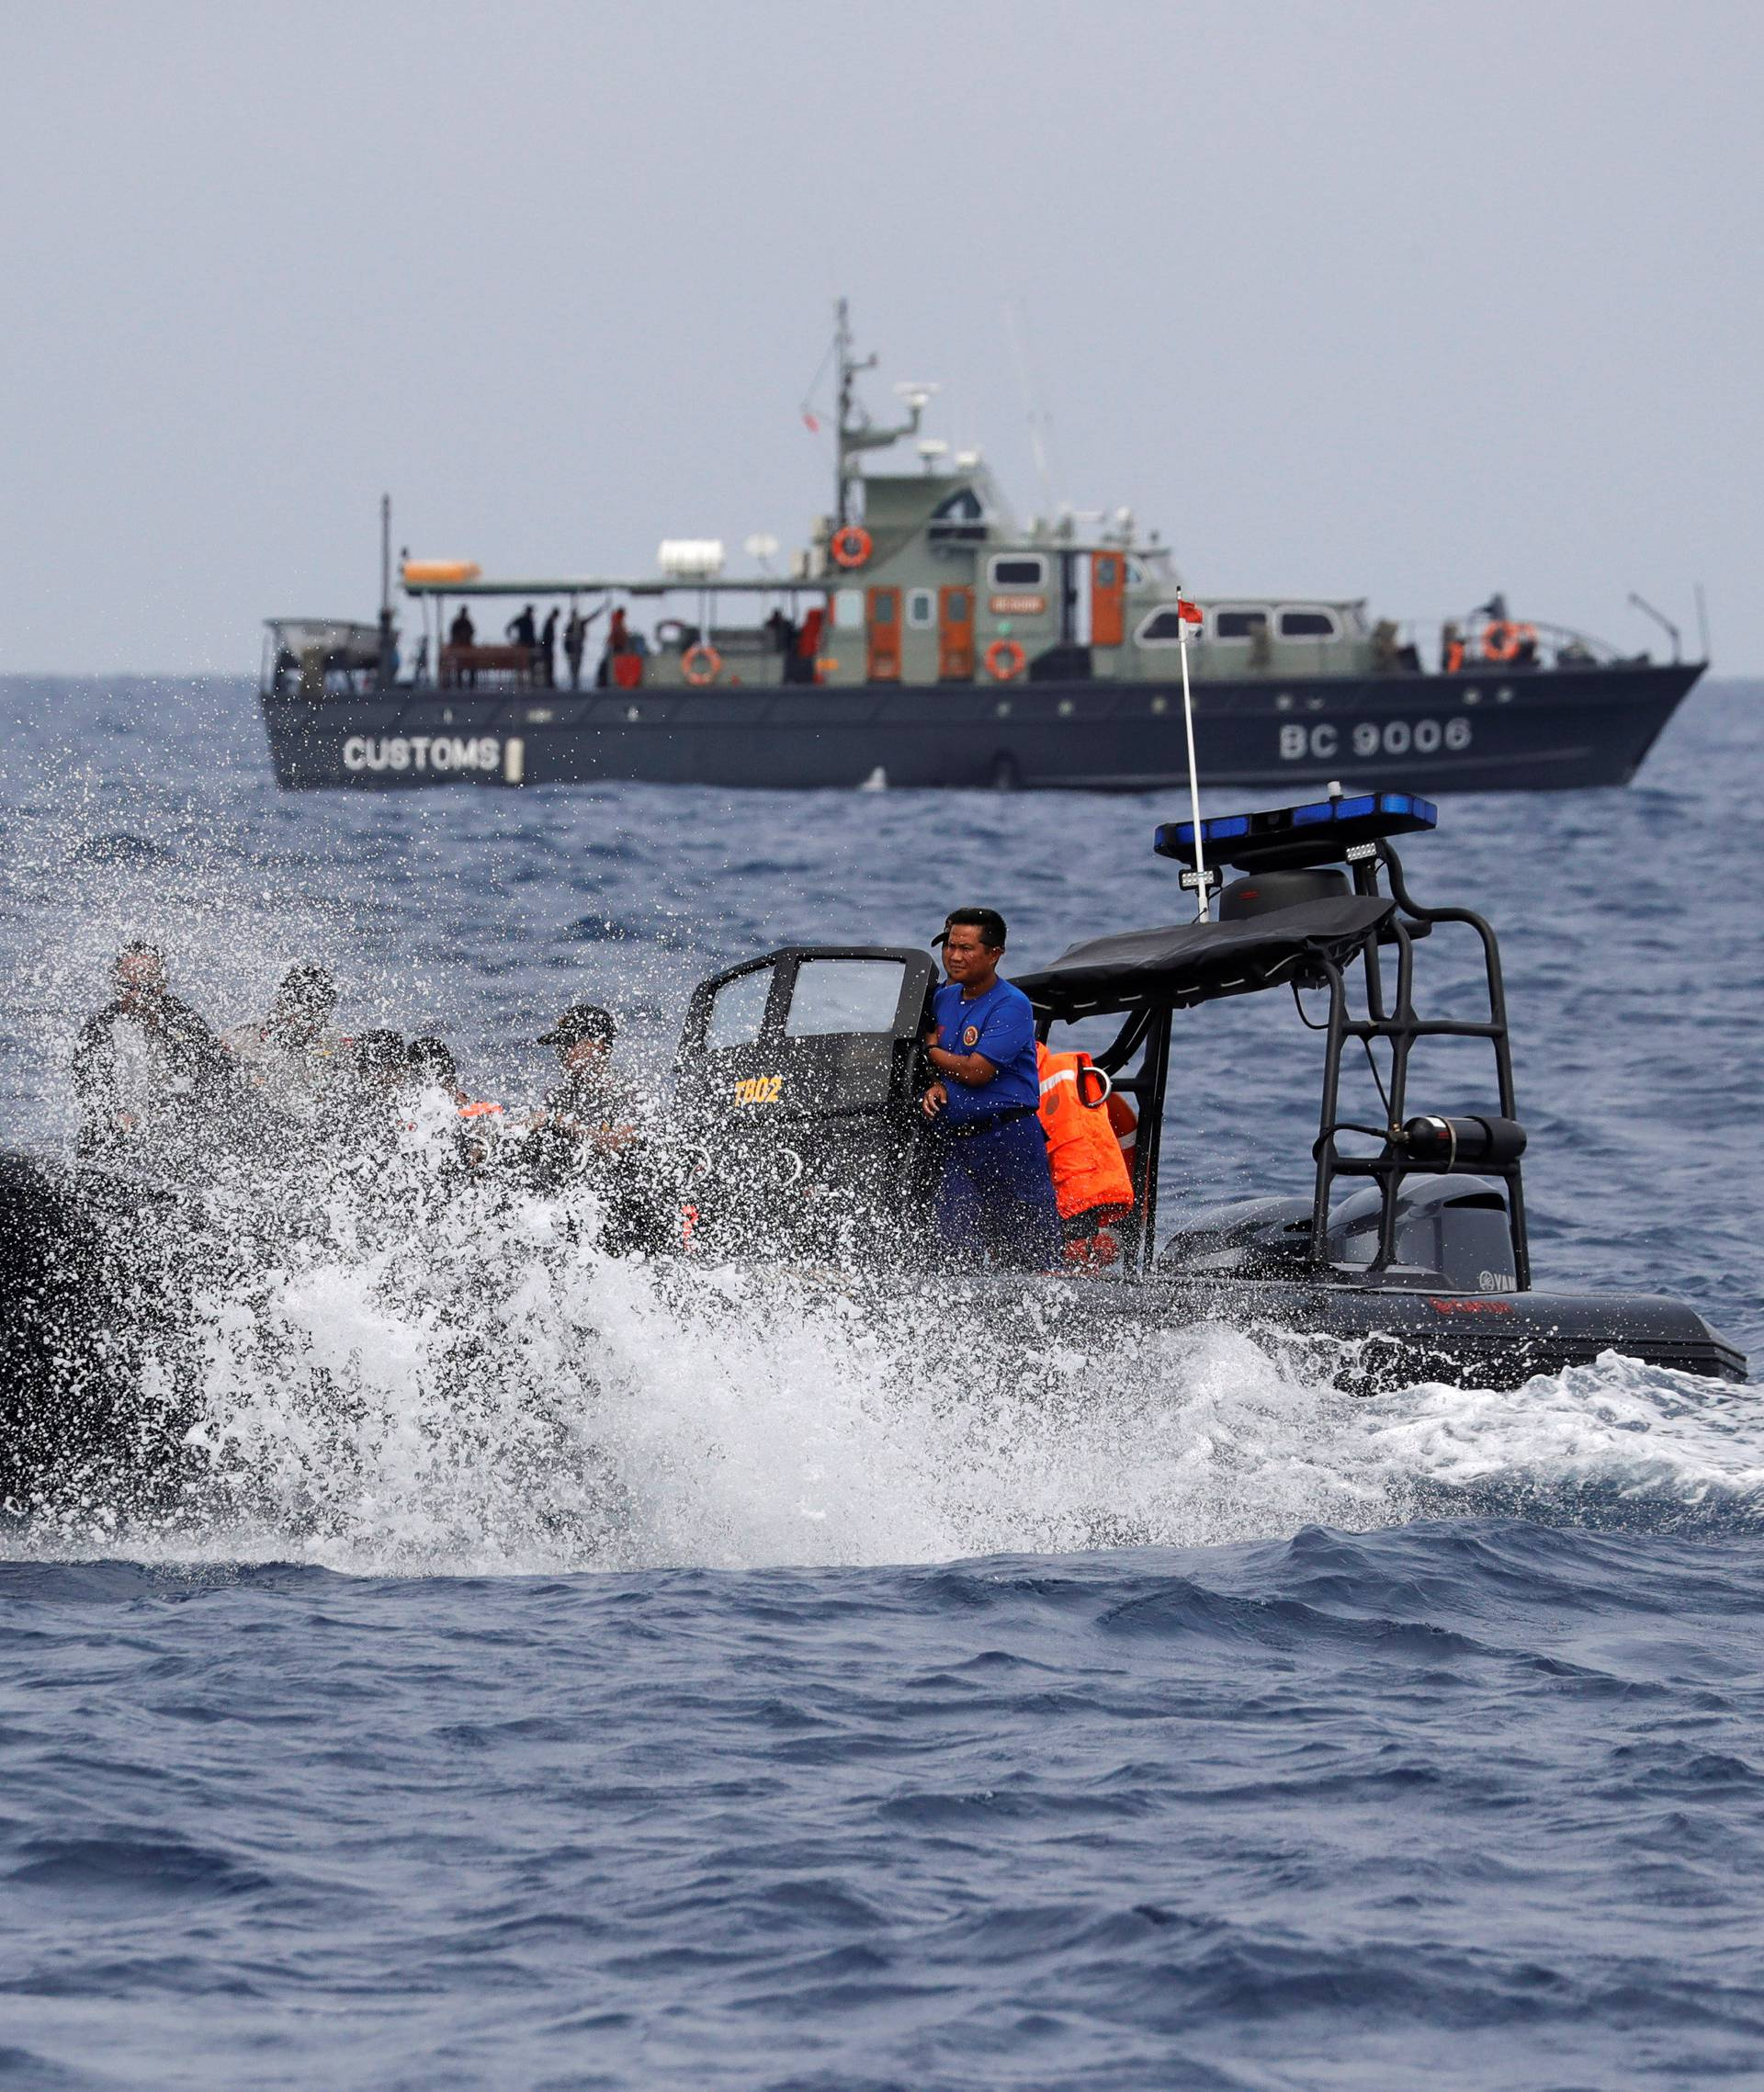 Rescue team members on an inflatable raft head to the location where Lion Air flight JT610 crashed into the sea, in the north coast of Karawang